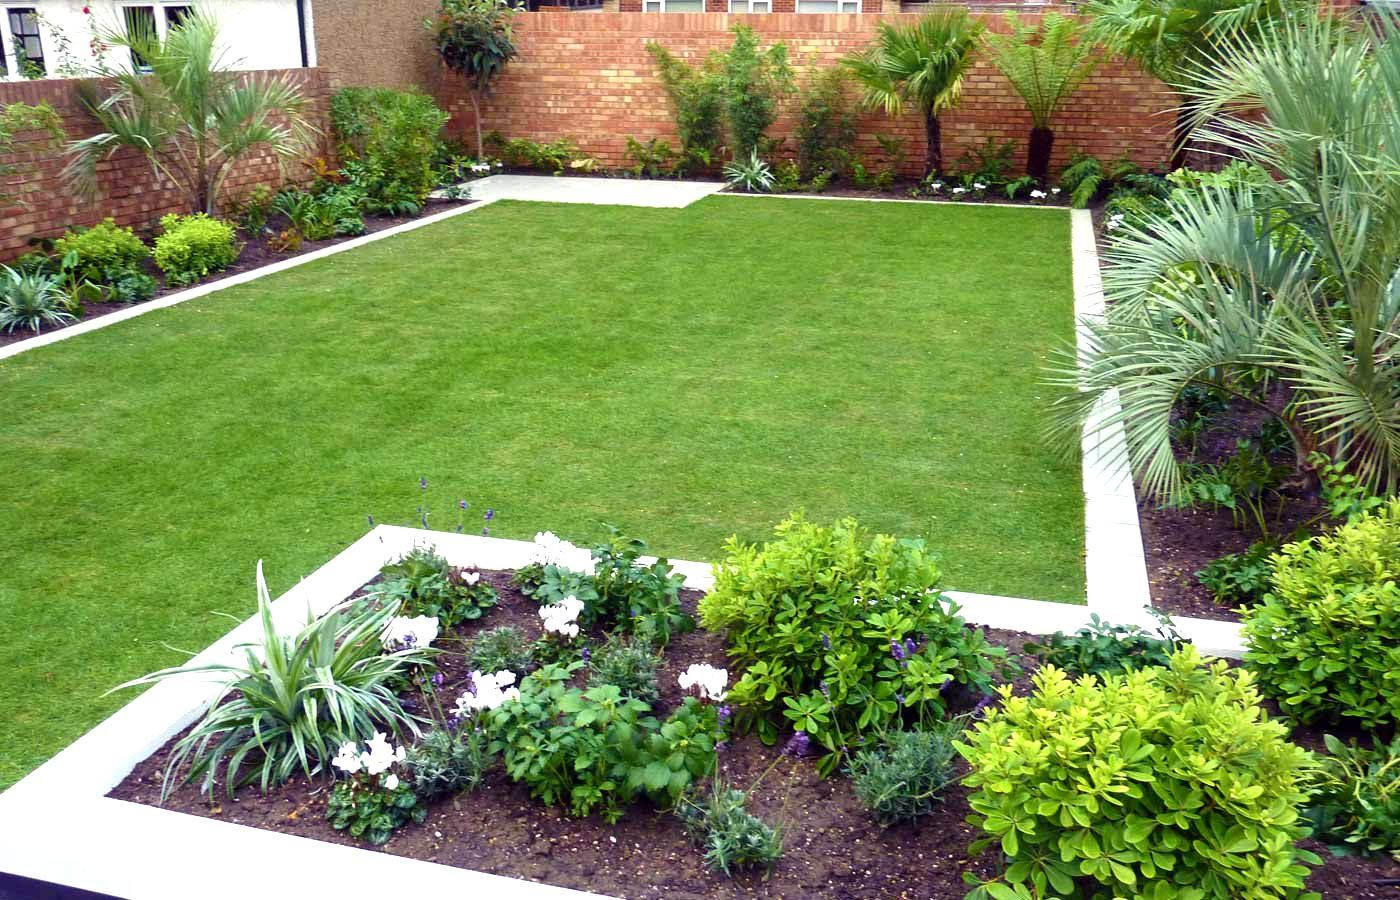 Simple garden designs no fret small garden design for Best small garden ideas